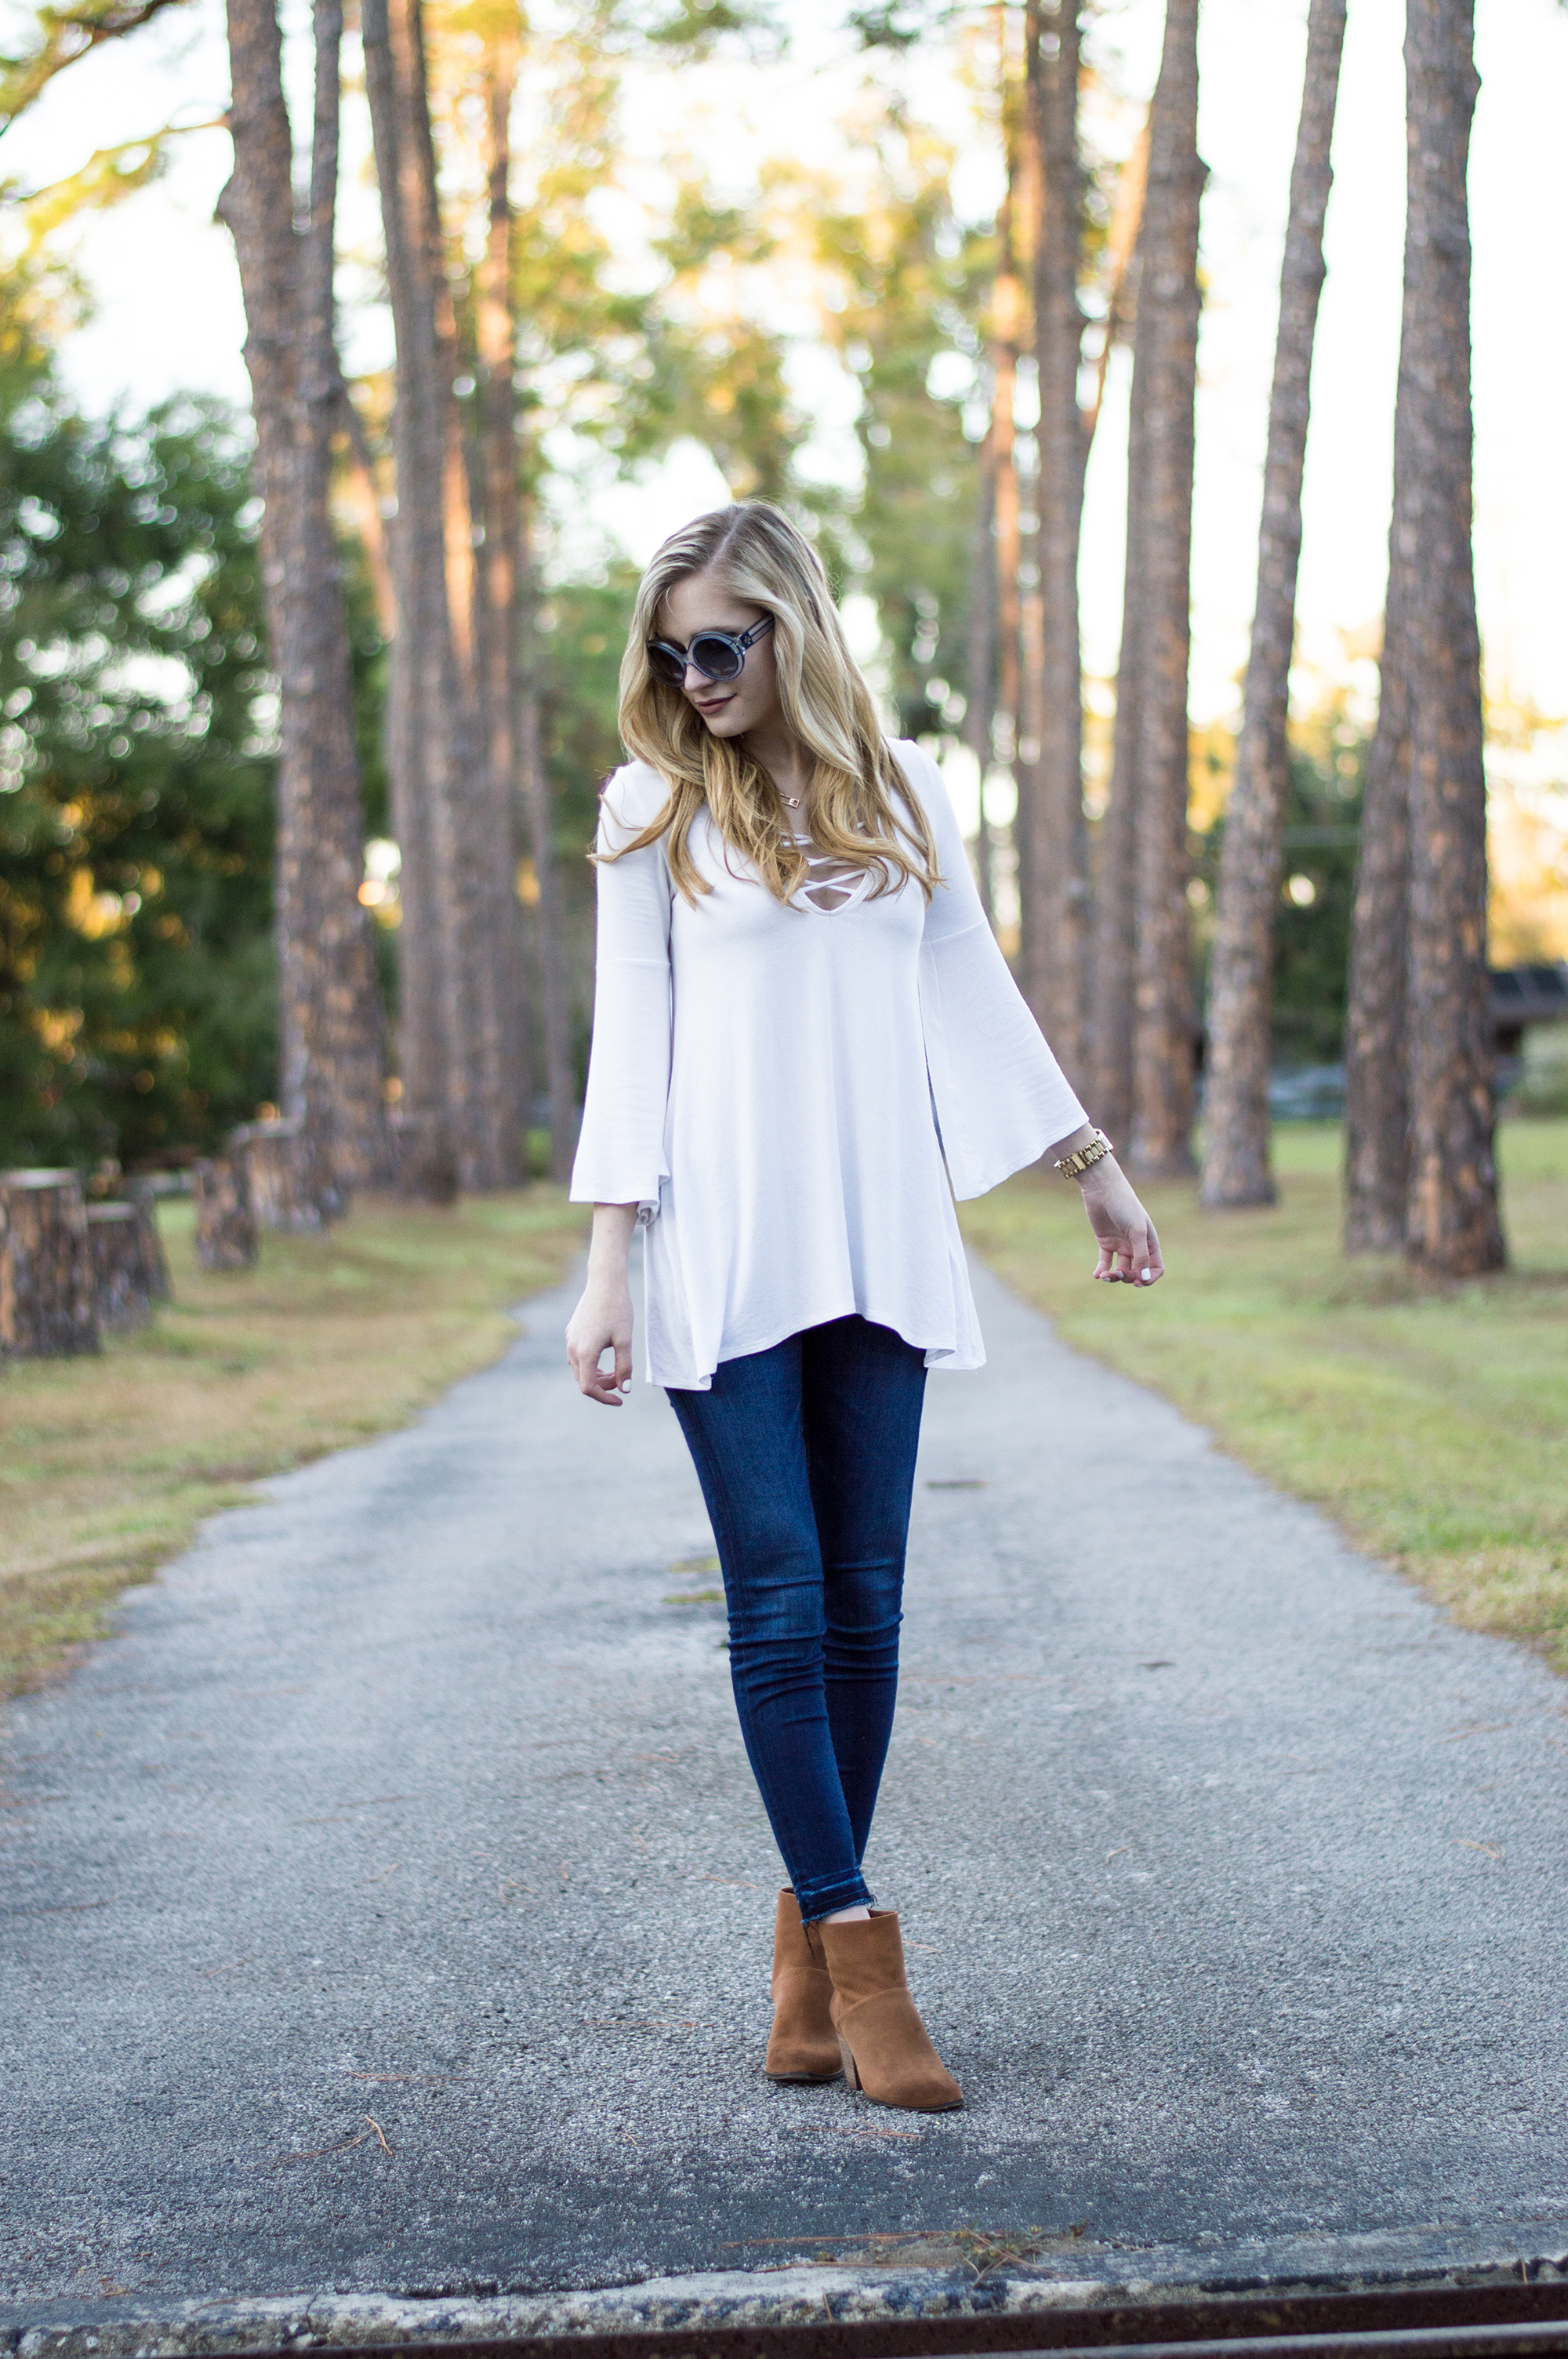 styelled-blog-elle-elisabeth-florida-blogger-fashion-style-ootd-urban-outfitters-chinese-laundry-skinny-jeans-hudson-denim-tory-burch-lace-up-fblogger-24